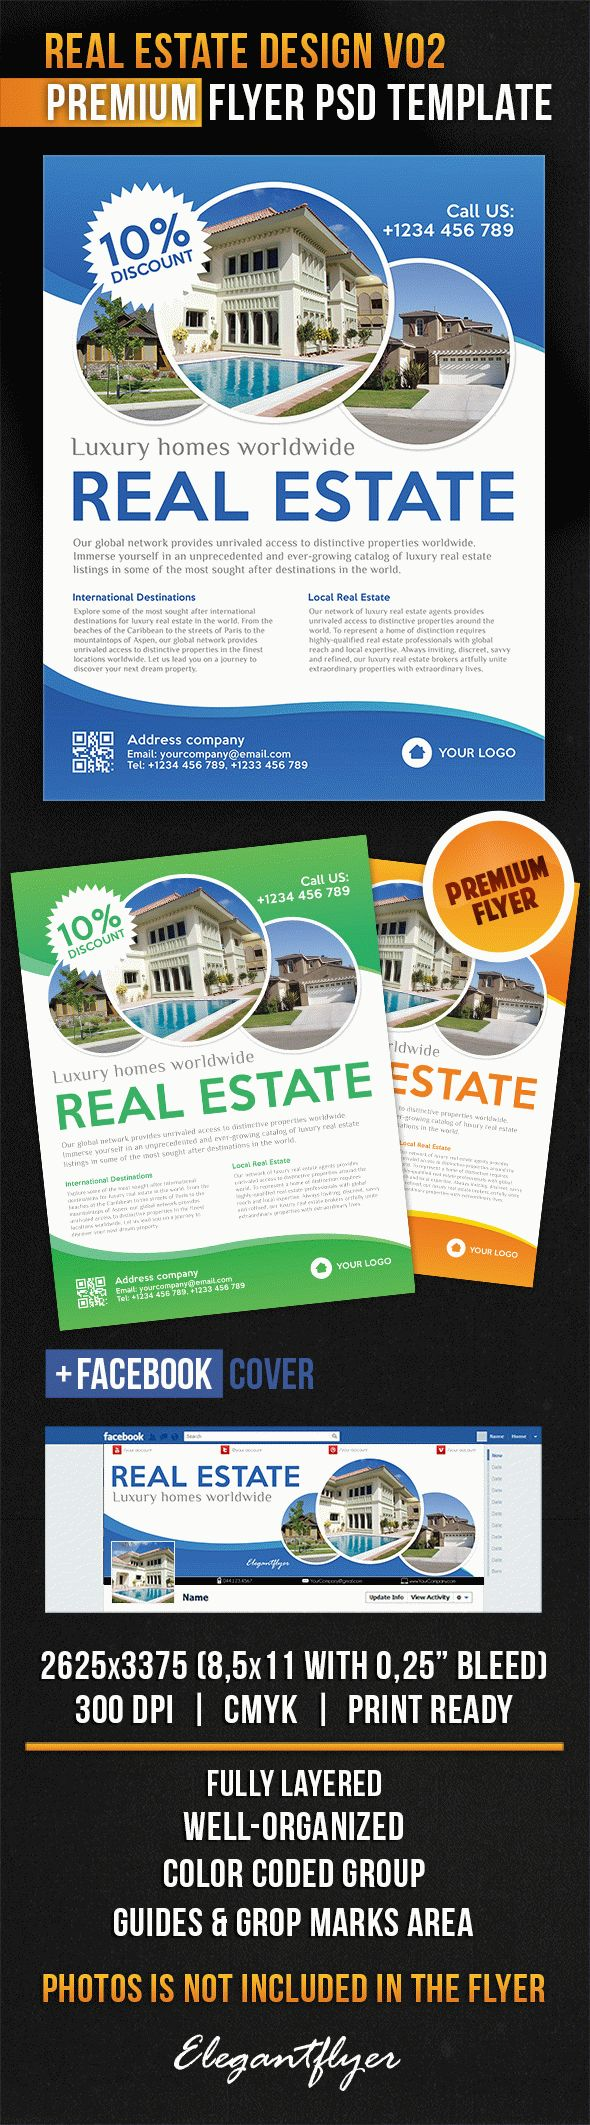 Real Estate Design V02 – Flyer PSD Template